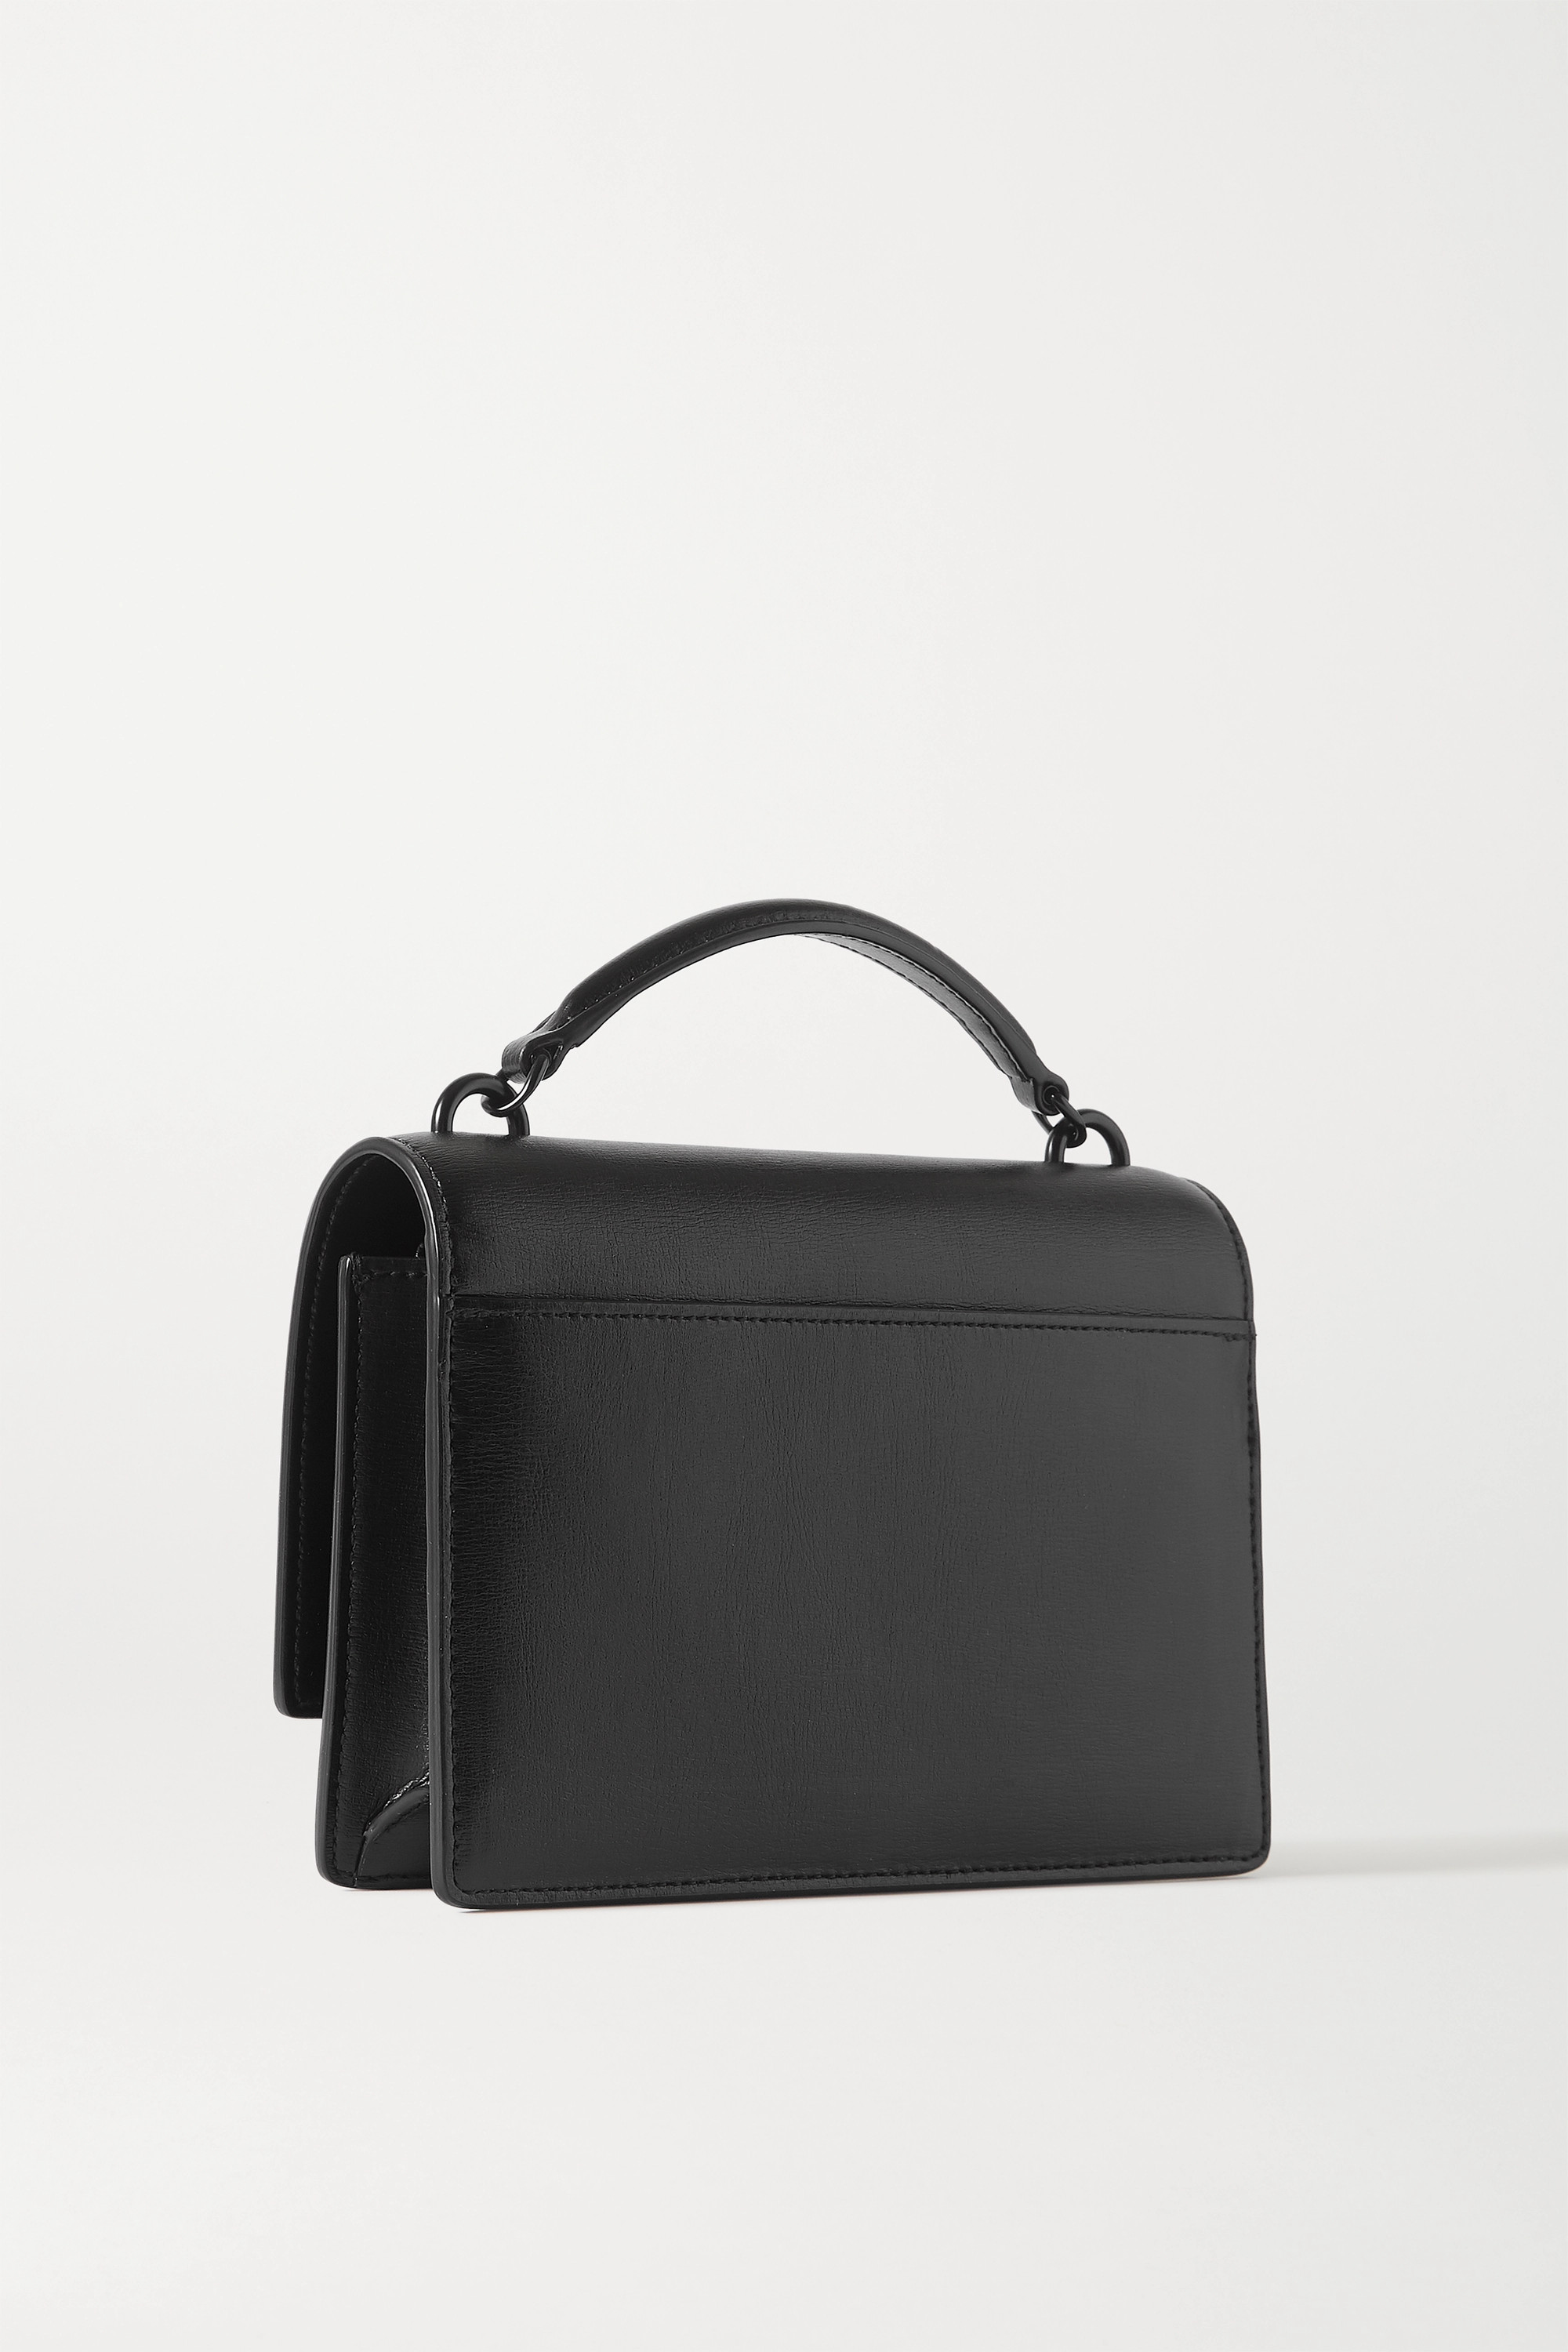 SAINT LAURENT Sunset leather shoulder bag